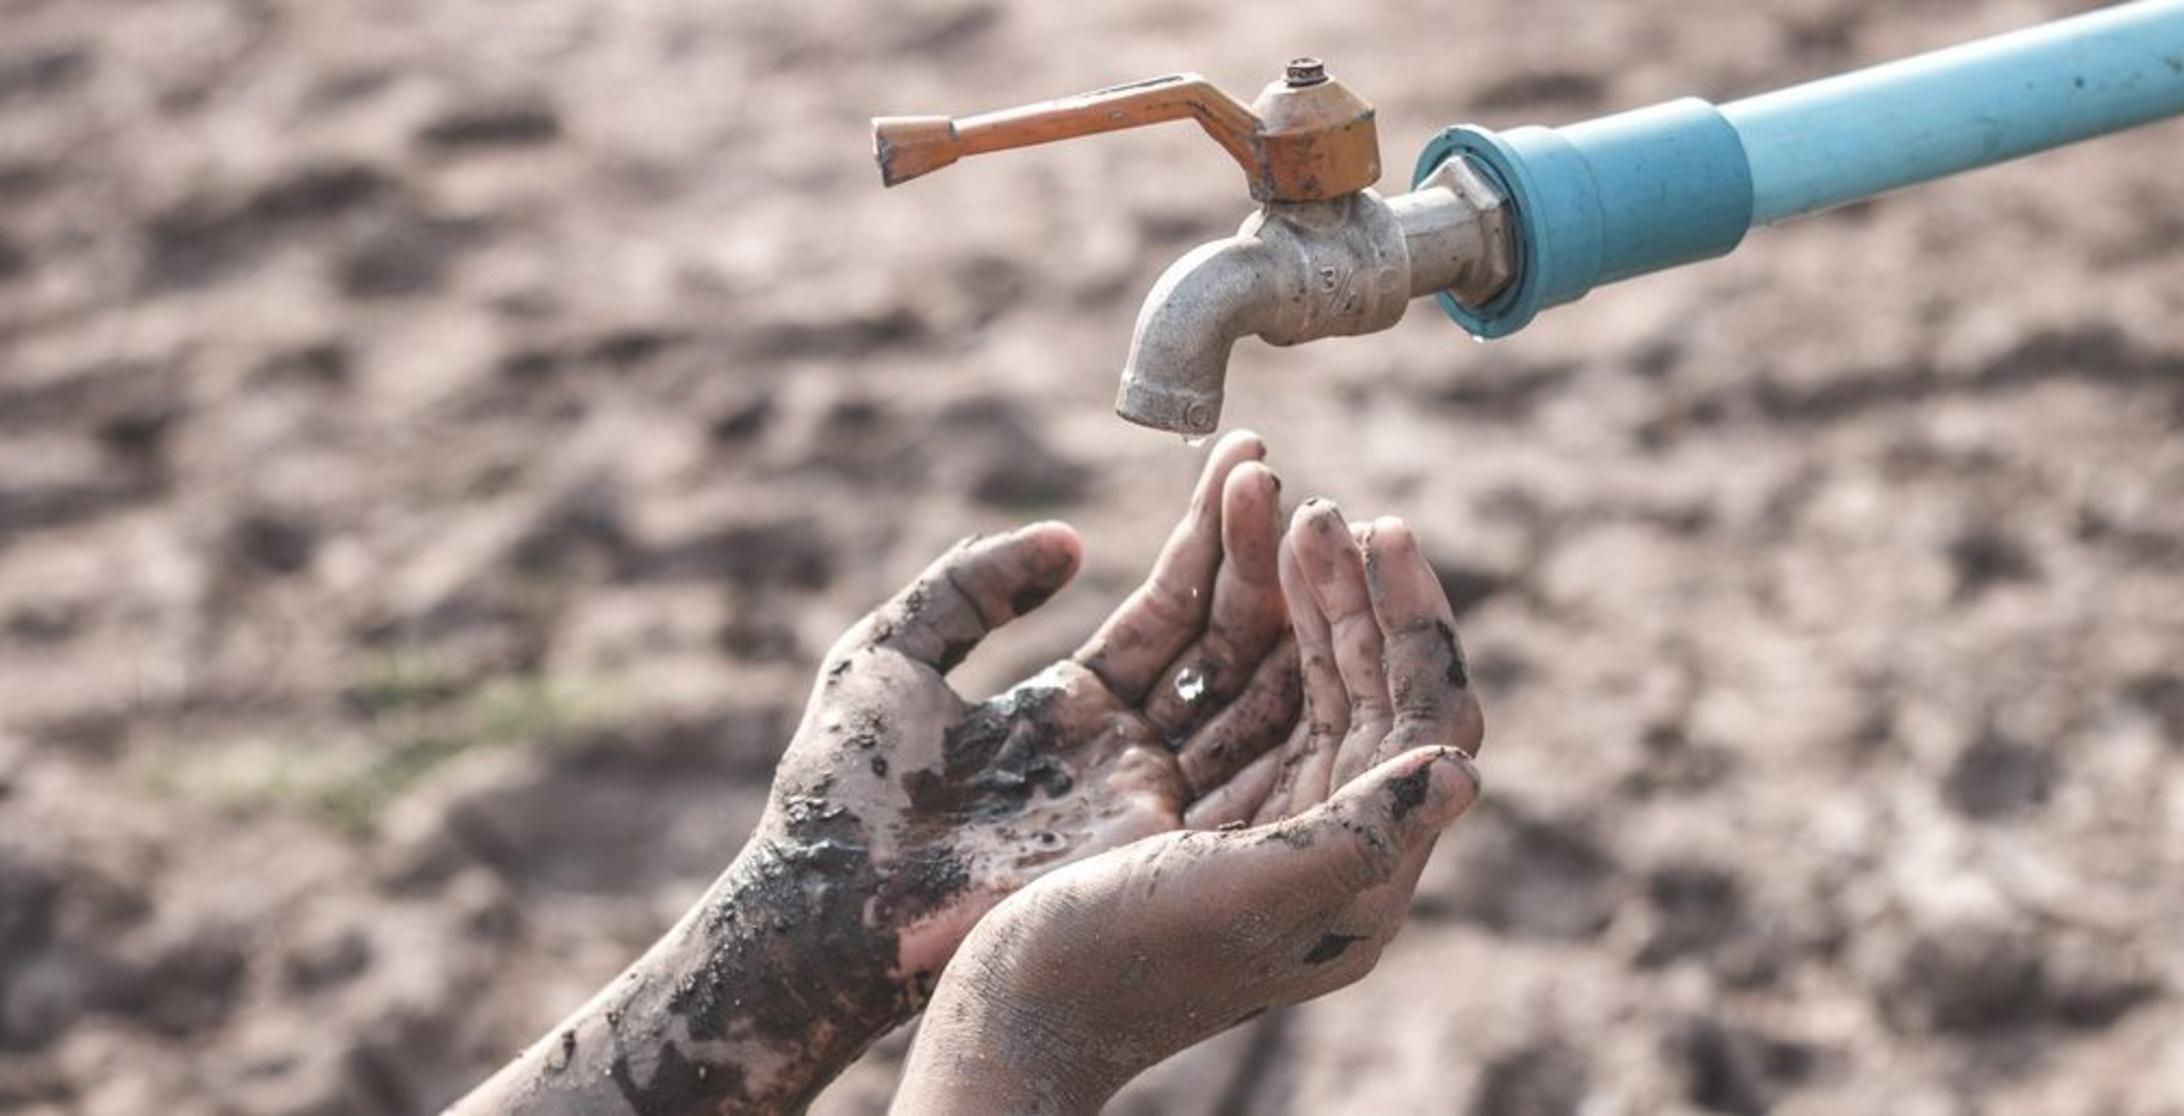 It Takes A Village: How Two States Dealt With A Severe Water Crisis